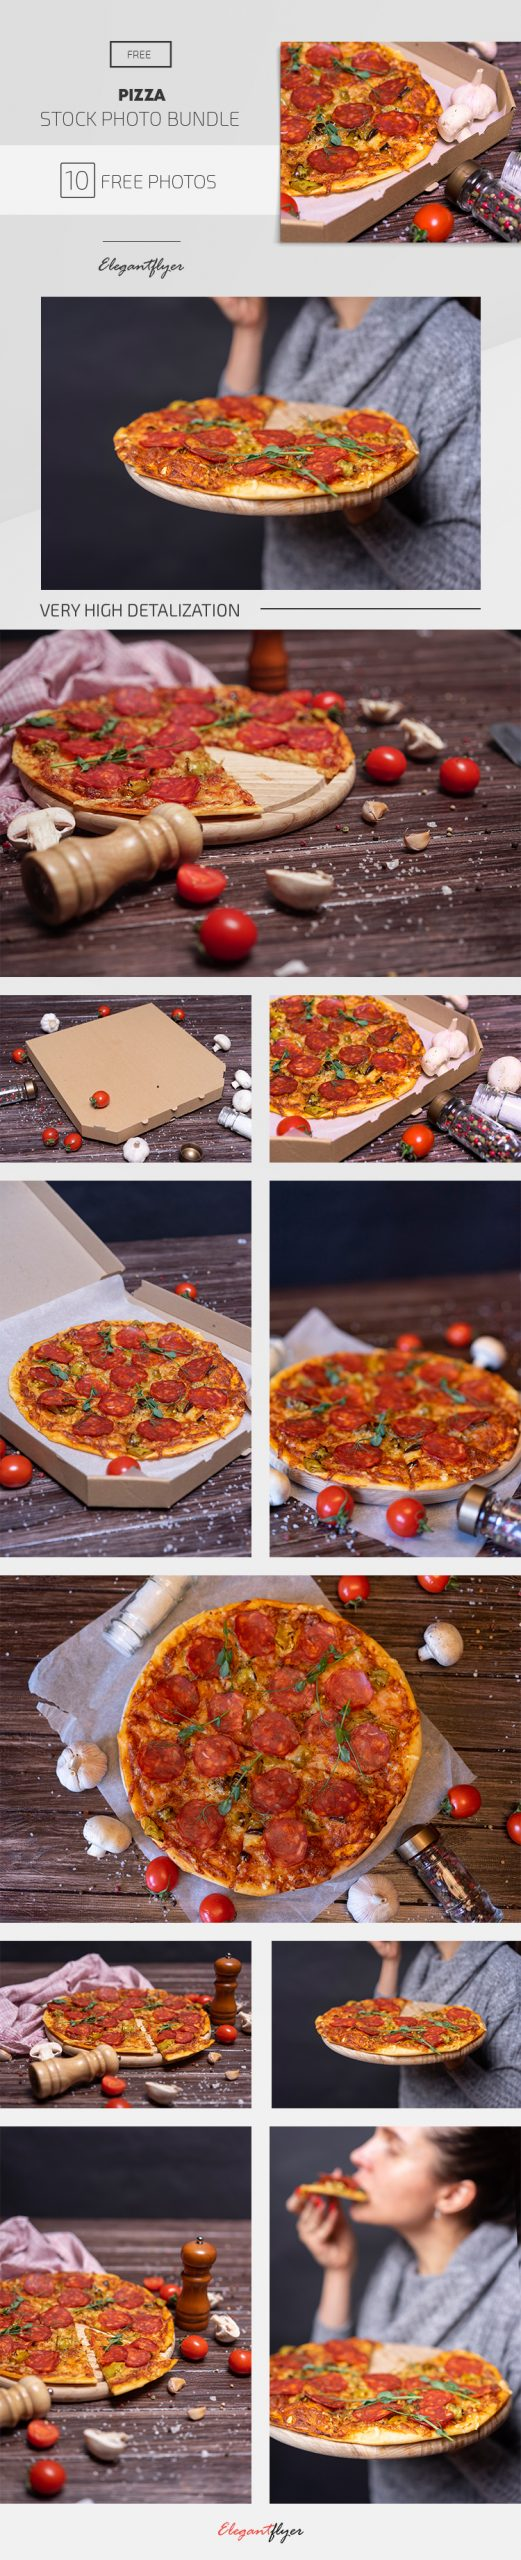 Pizza – 10 Free Stock Photos Bundle